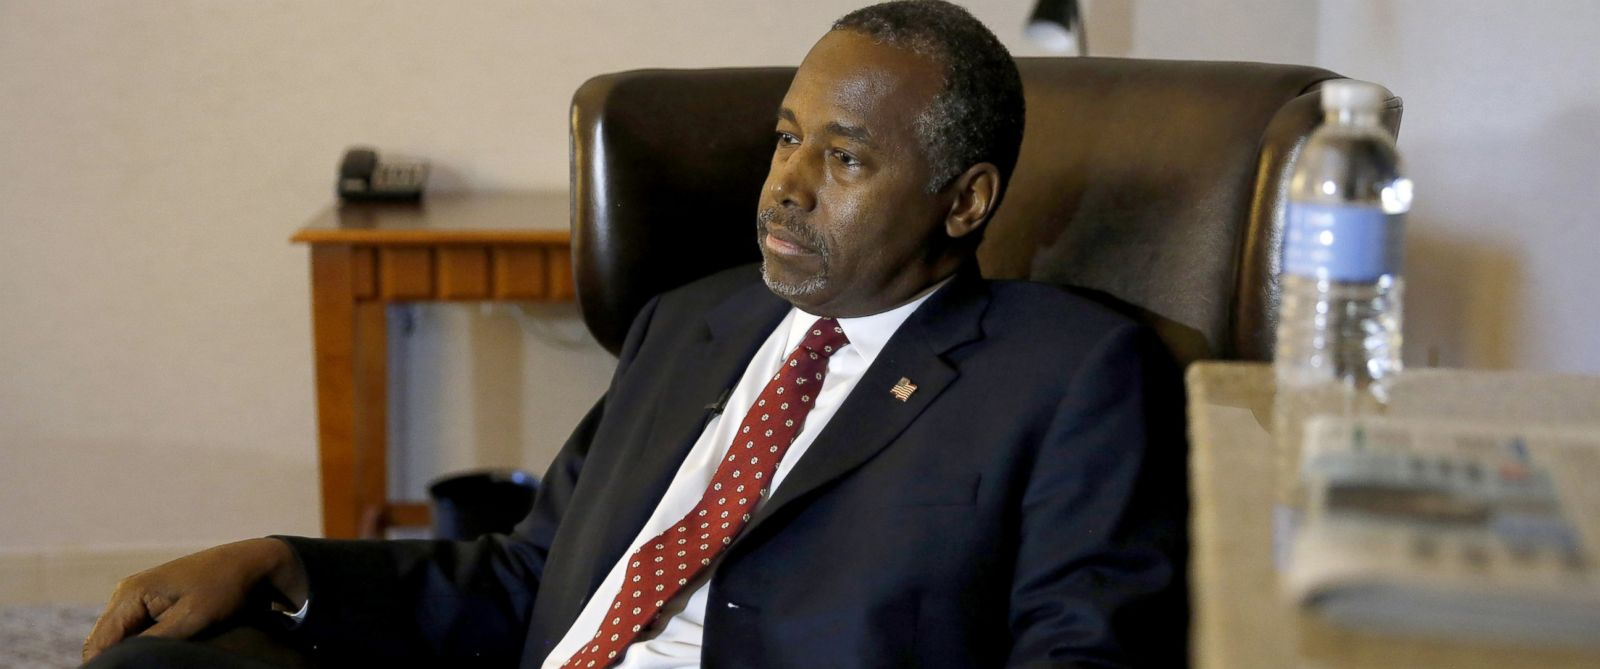 PHOTO: Republican presidential candidate Ben Carson discusses faith during an exclusive interview with The Associated Press at a hotel in Broomfield, Colo.